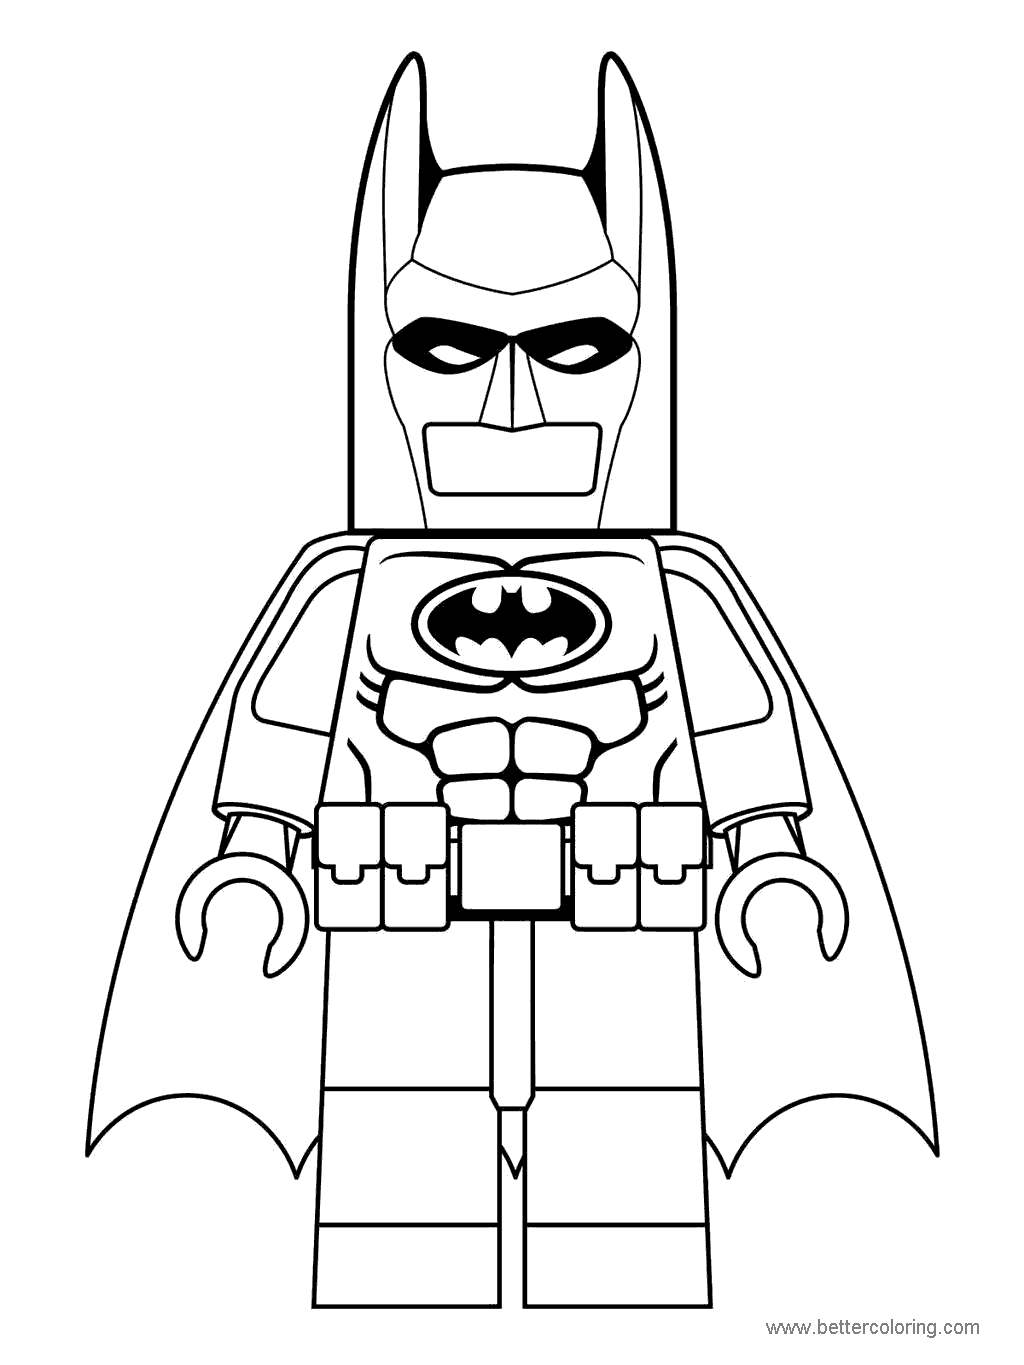 Free Free Lego Batman Movie Coloring Pages printable